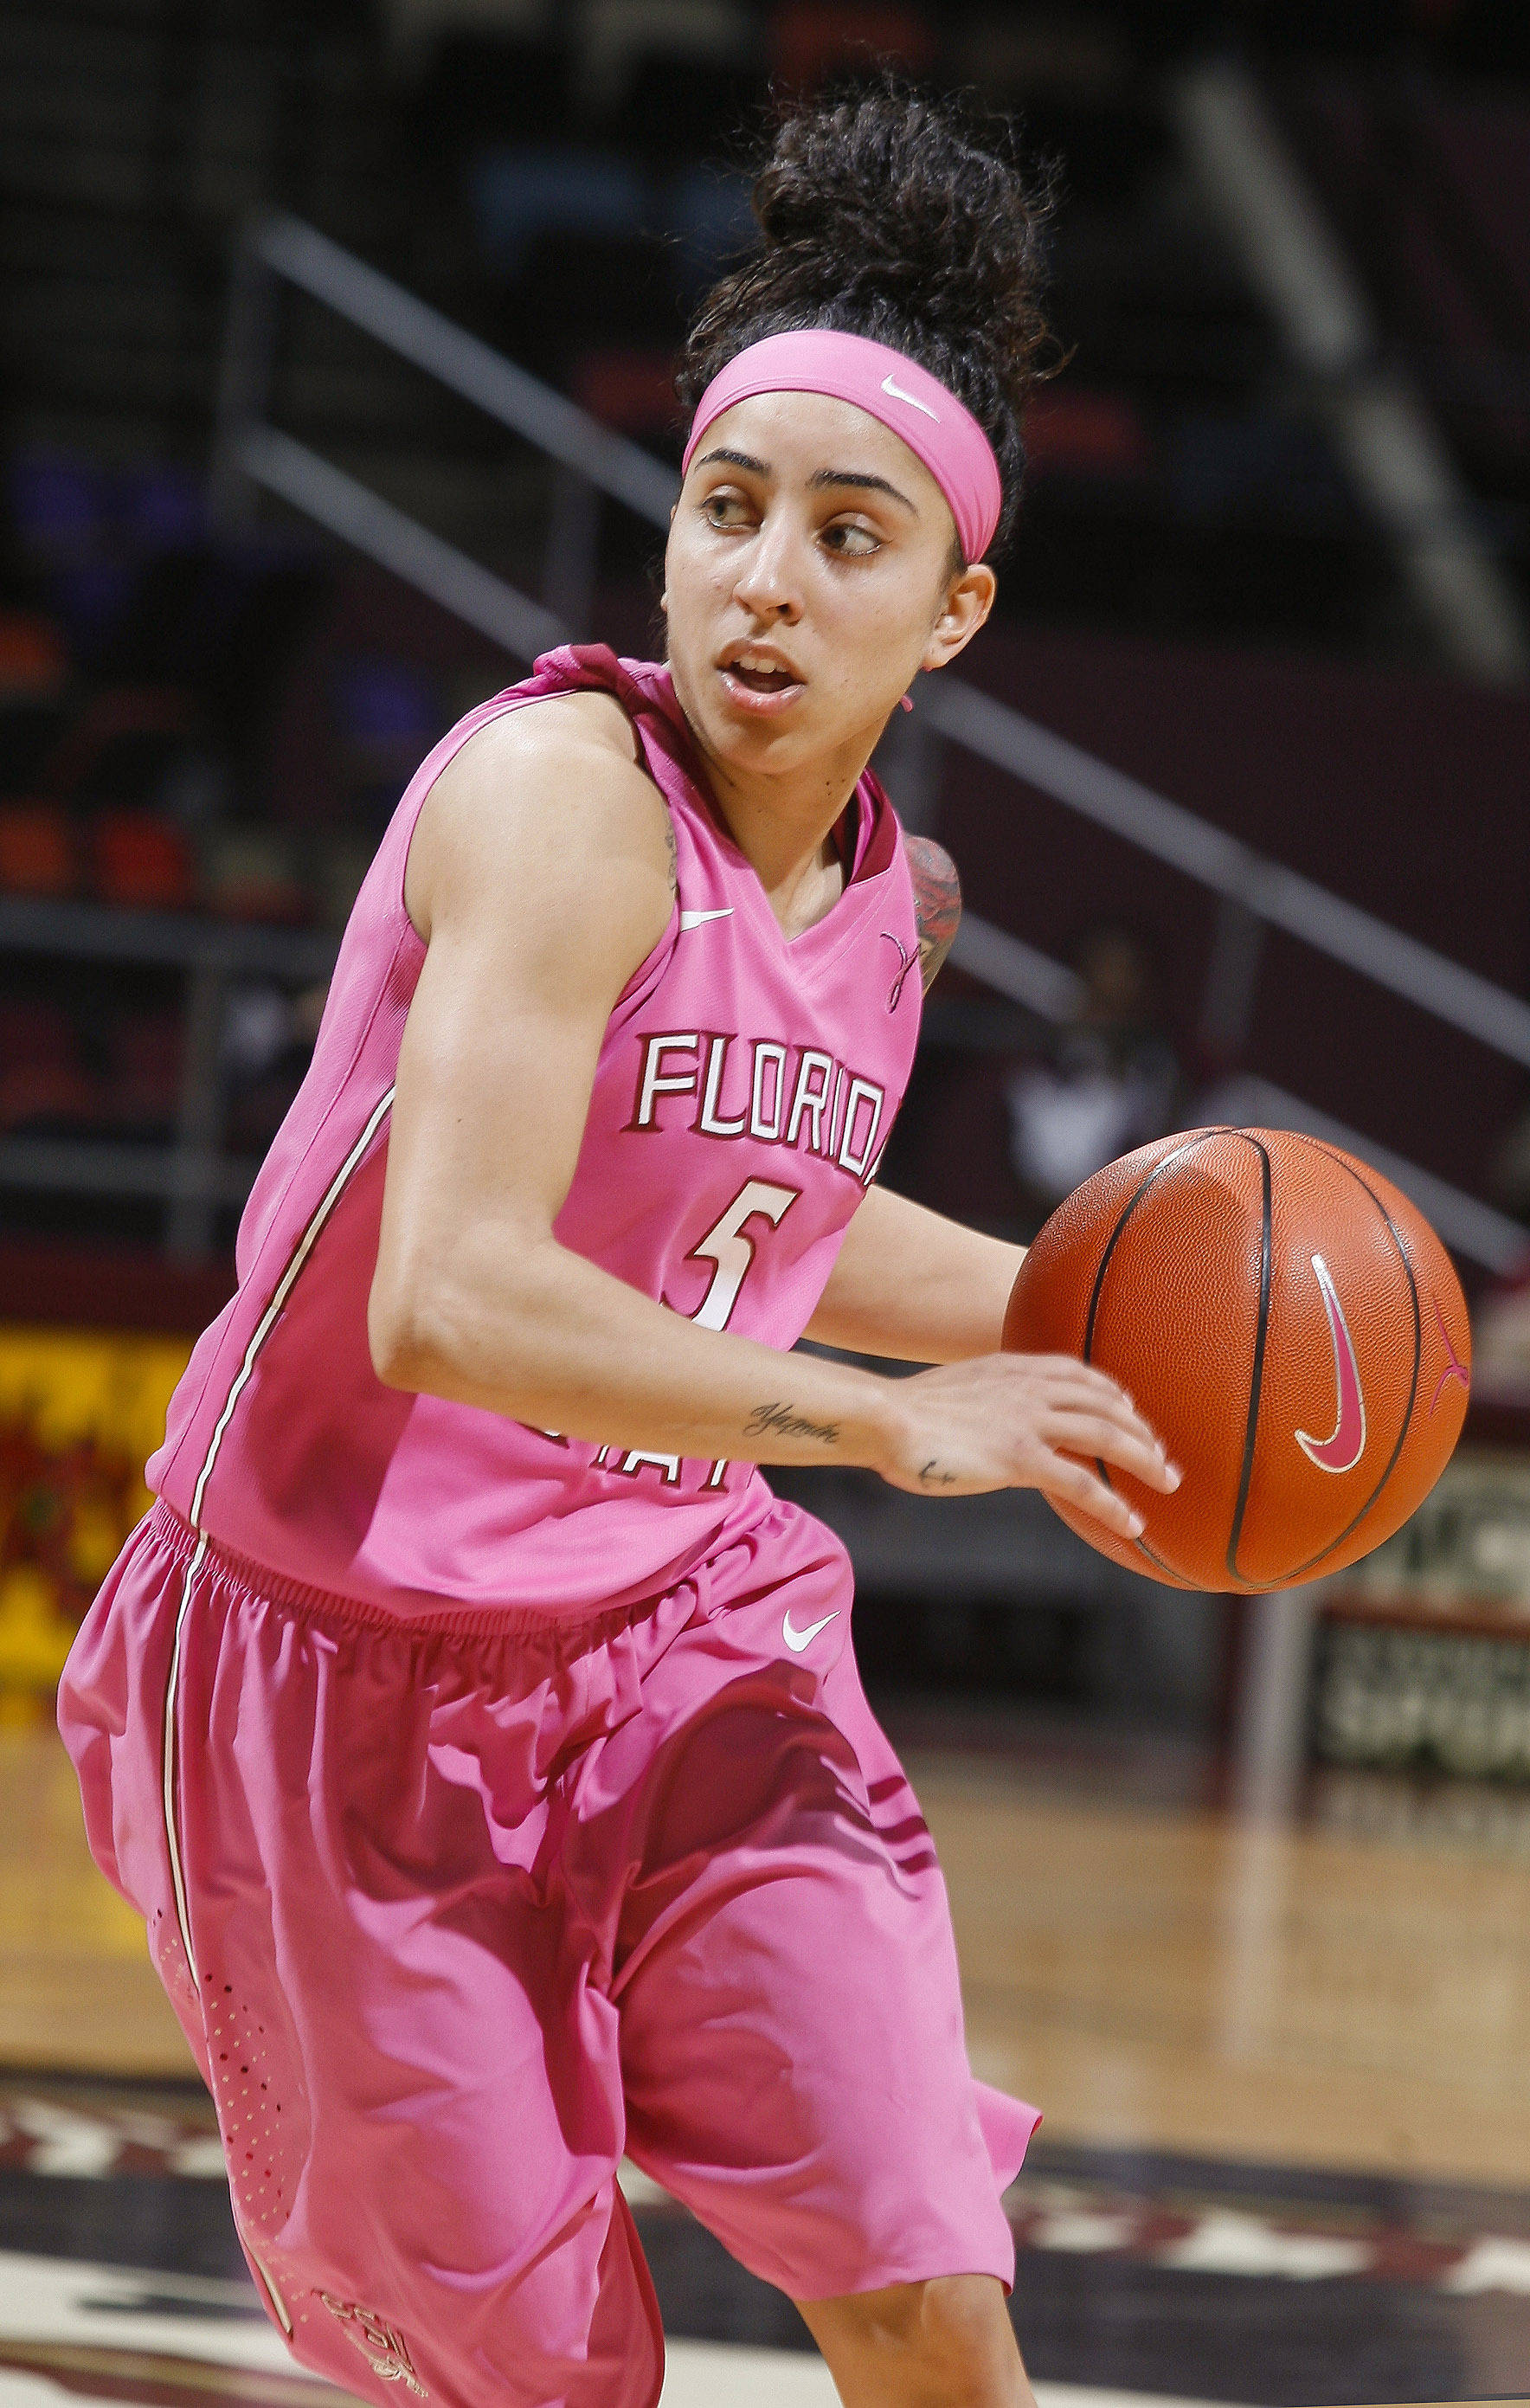 Feb 9, 2014; Tallahassee, FL, USA; Florida State Seminoles guard Cheetah Delgado (5) dribbles the ball in the second half against the Boston College Eagles. Mandatory Credit: Phil Sears-USA TODAY Sports